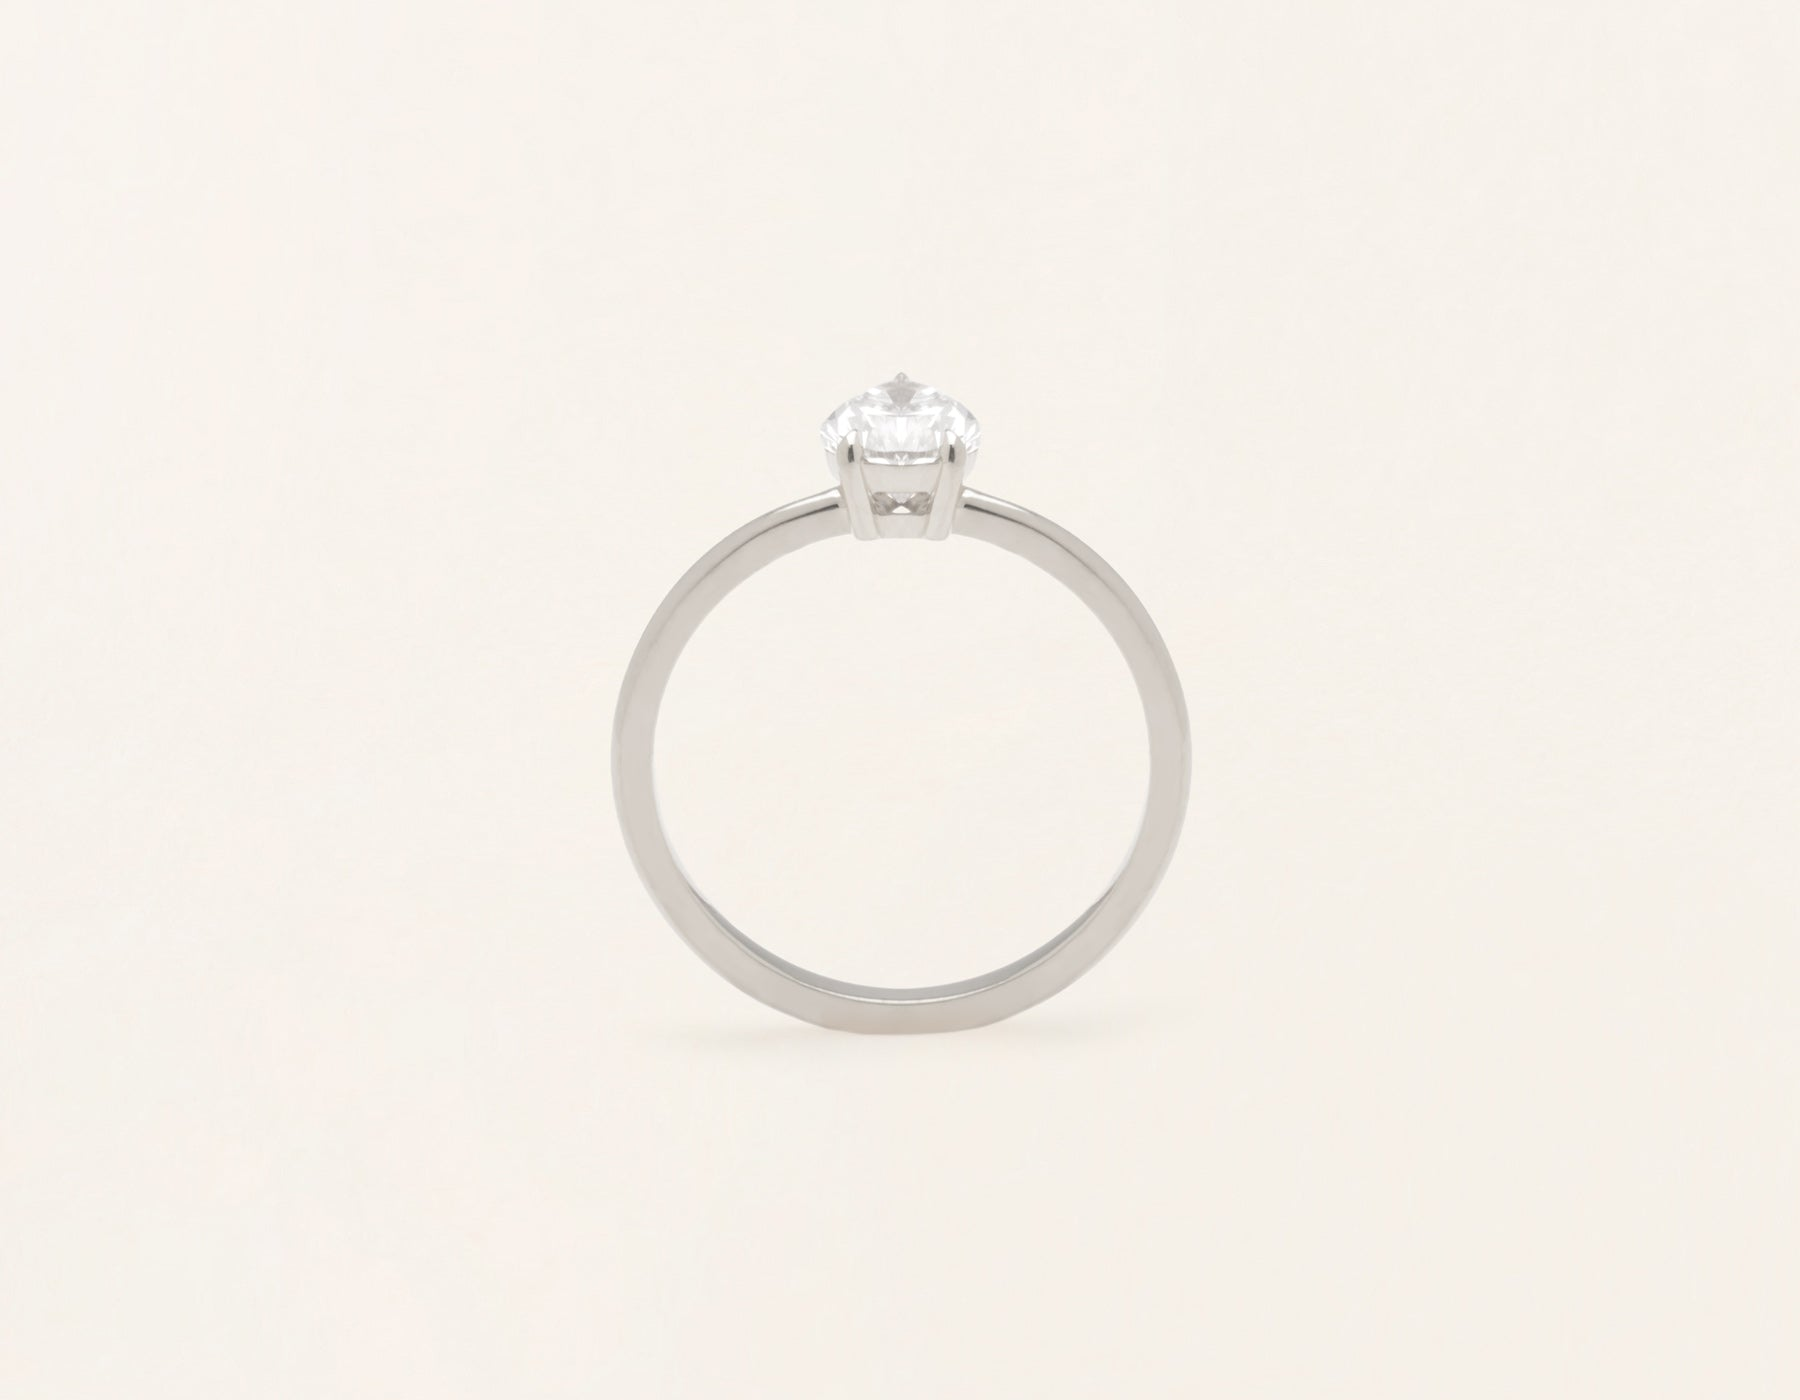 Vrai and Oro modern classic The pear diamond engagement ring 18k solid white gold sustainable jewelry